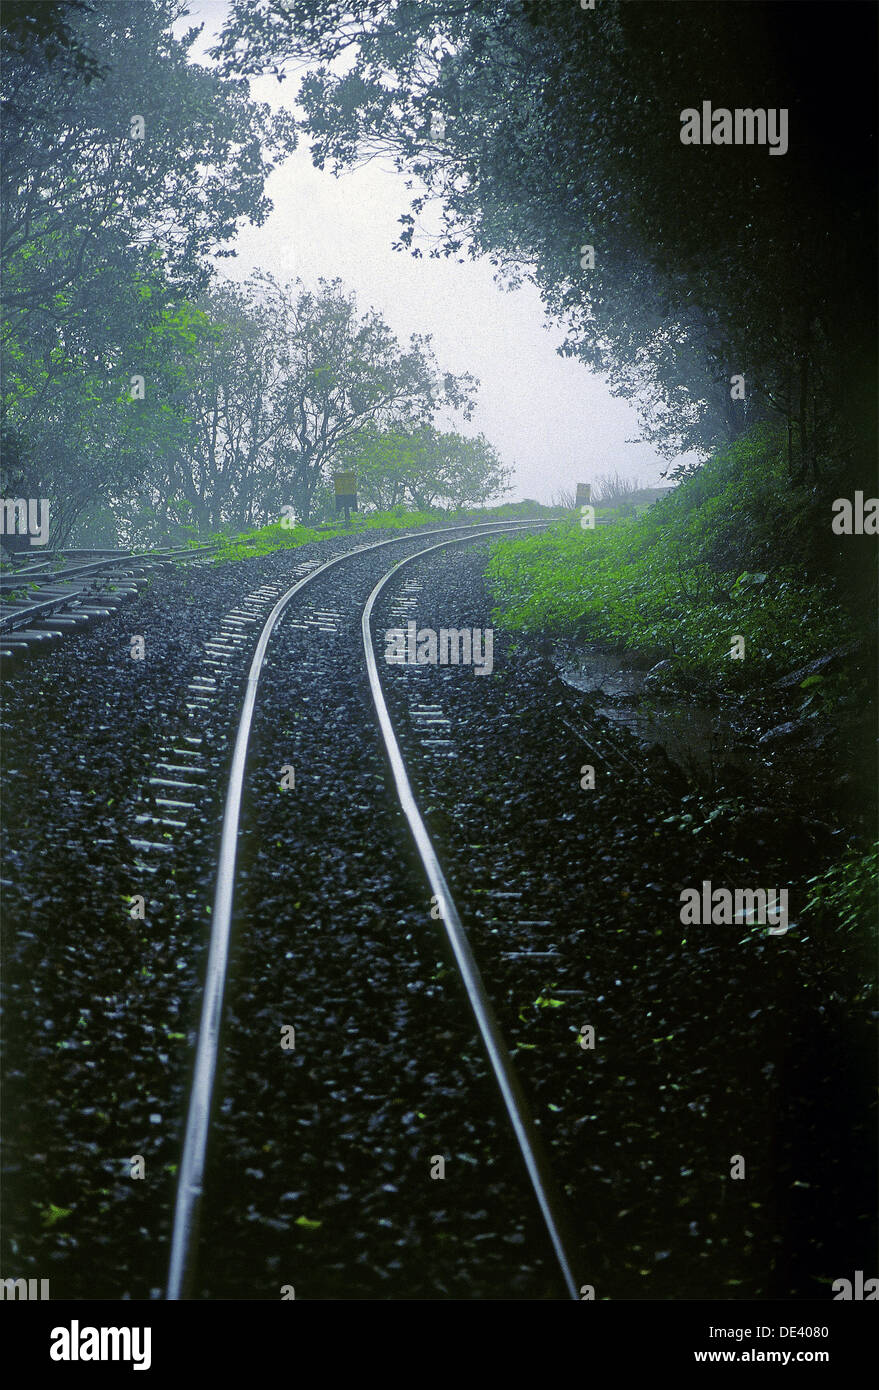 A Toy train railway track leading towards the forest, its journey from Neral to Matheran. Maharashtra, India. Stock Photo